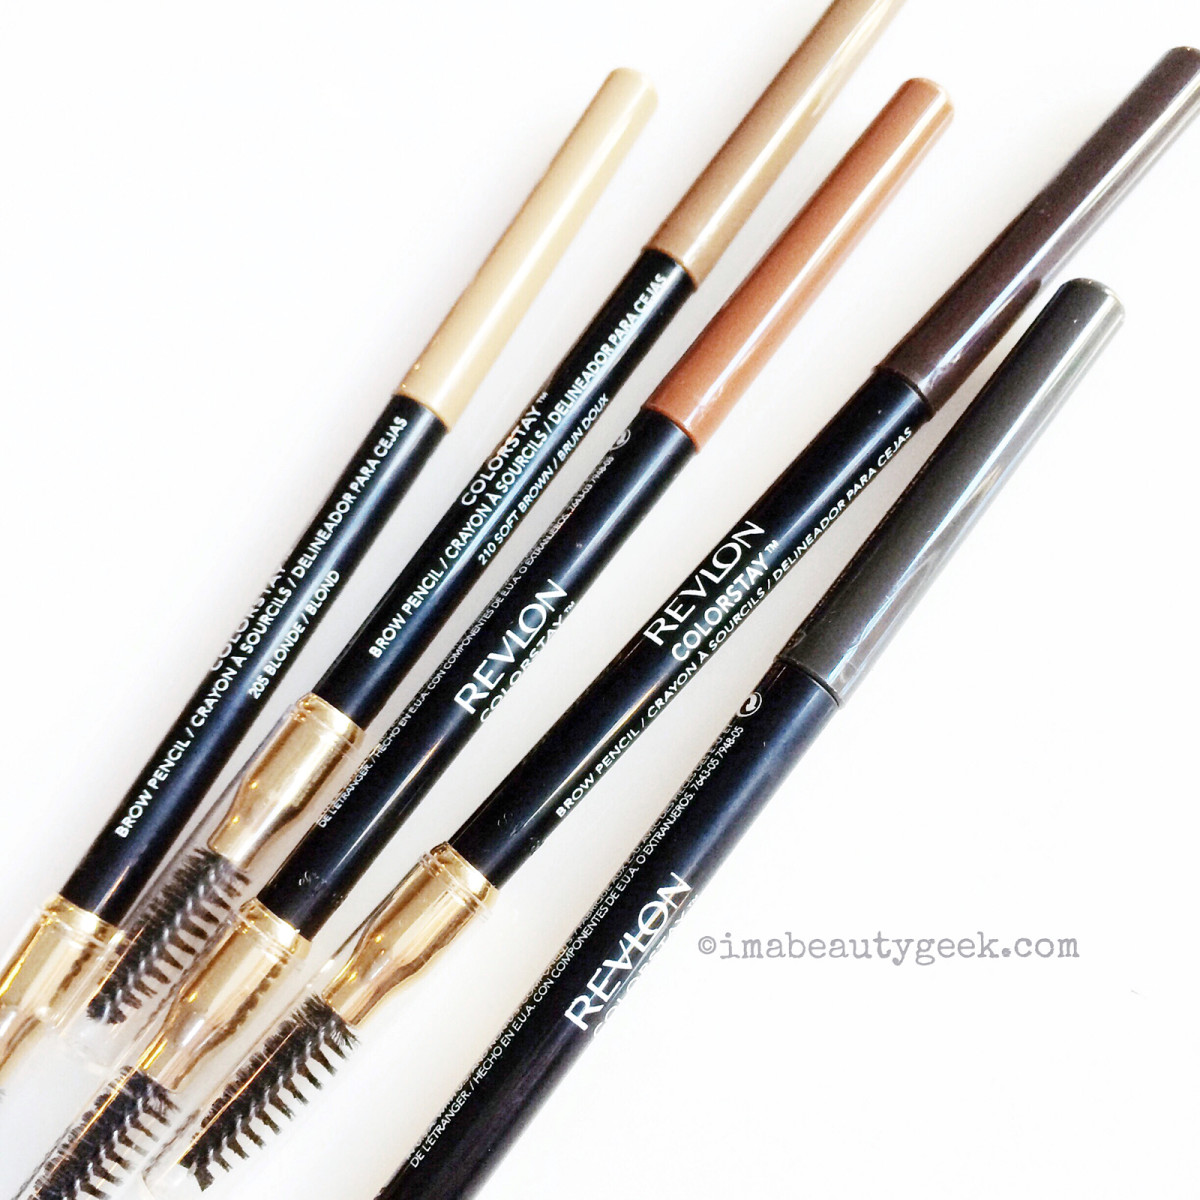 New Revlon Colorstay Brow Pencils And Crayons Include Soft